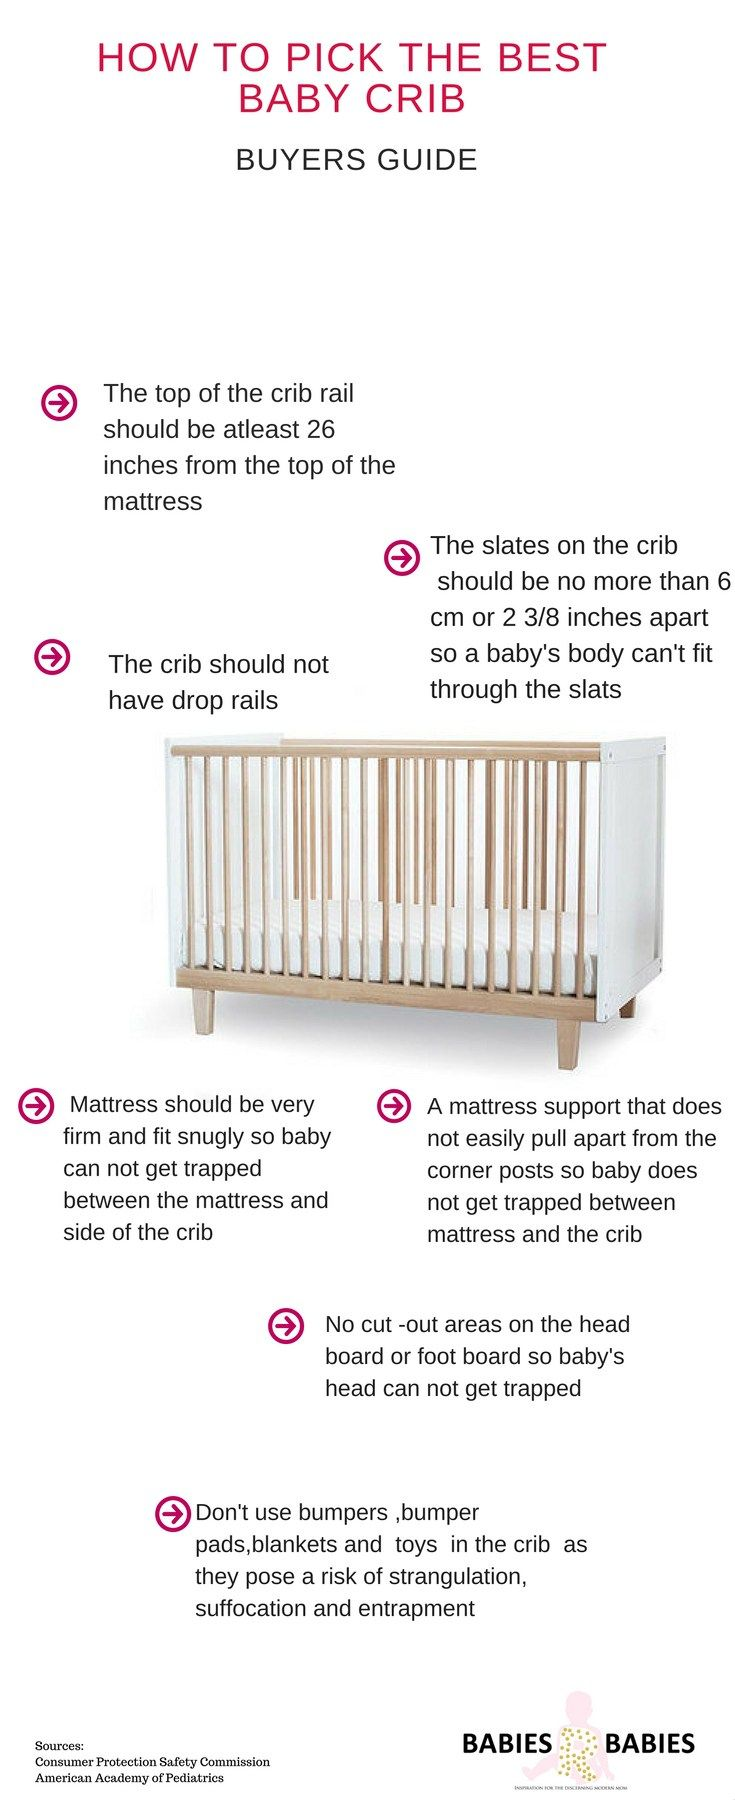 A comprehensive Guide on How to choose the best baby crib.What to look for and avoid when picking a baby mattress.Includes crib and baby sleep safety tips.